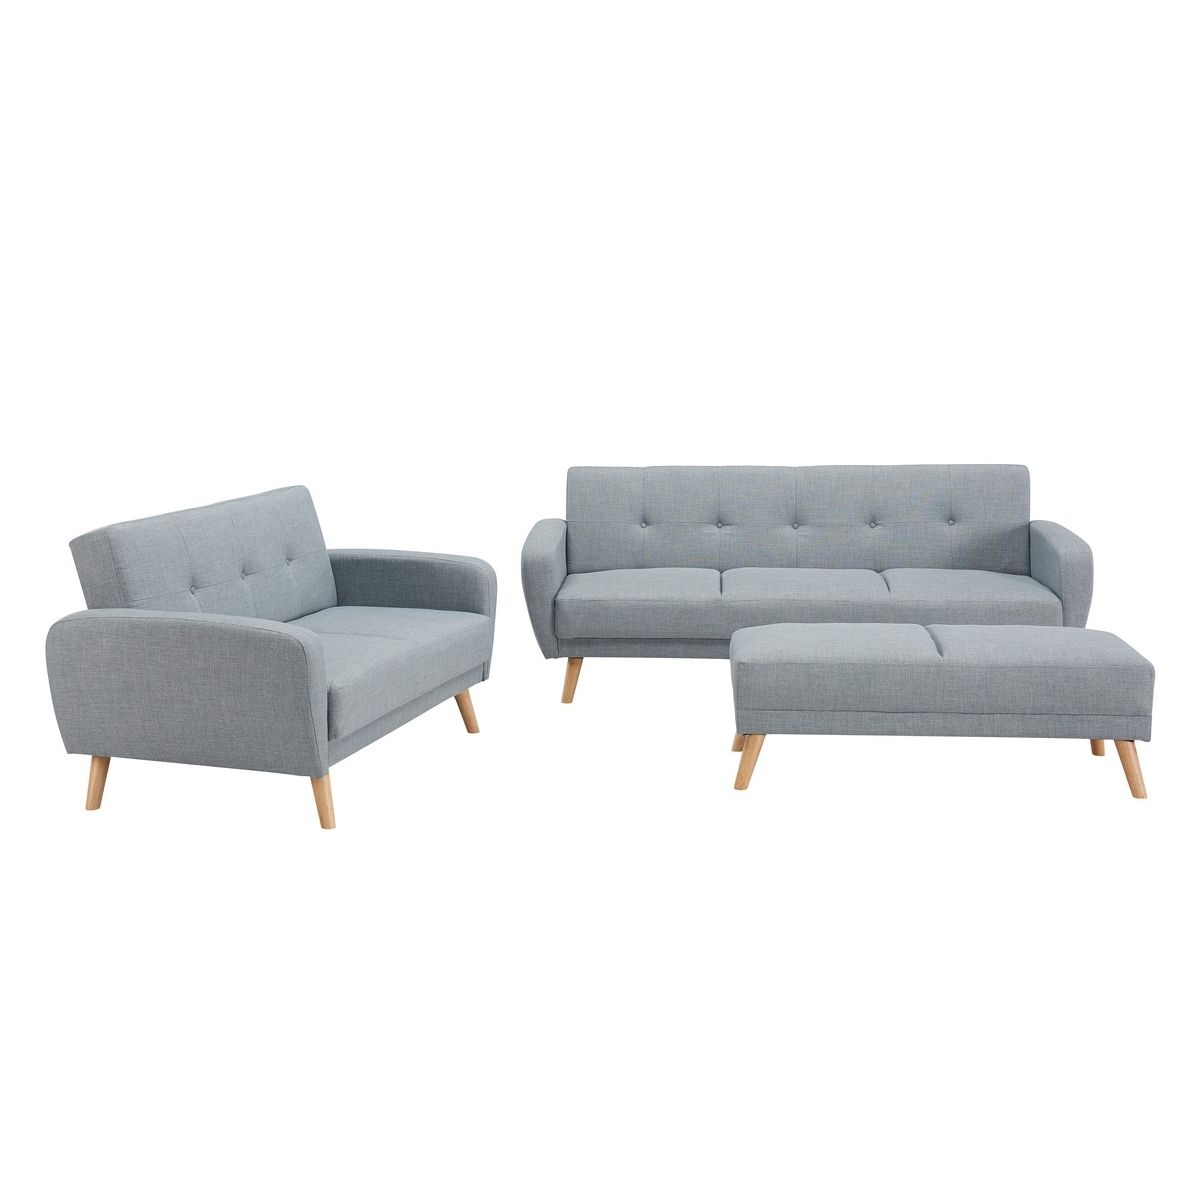 deco in paris ensemble canape convertible gris